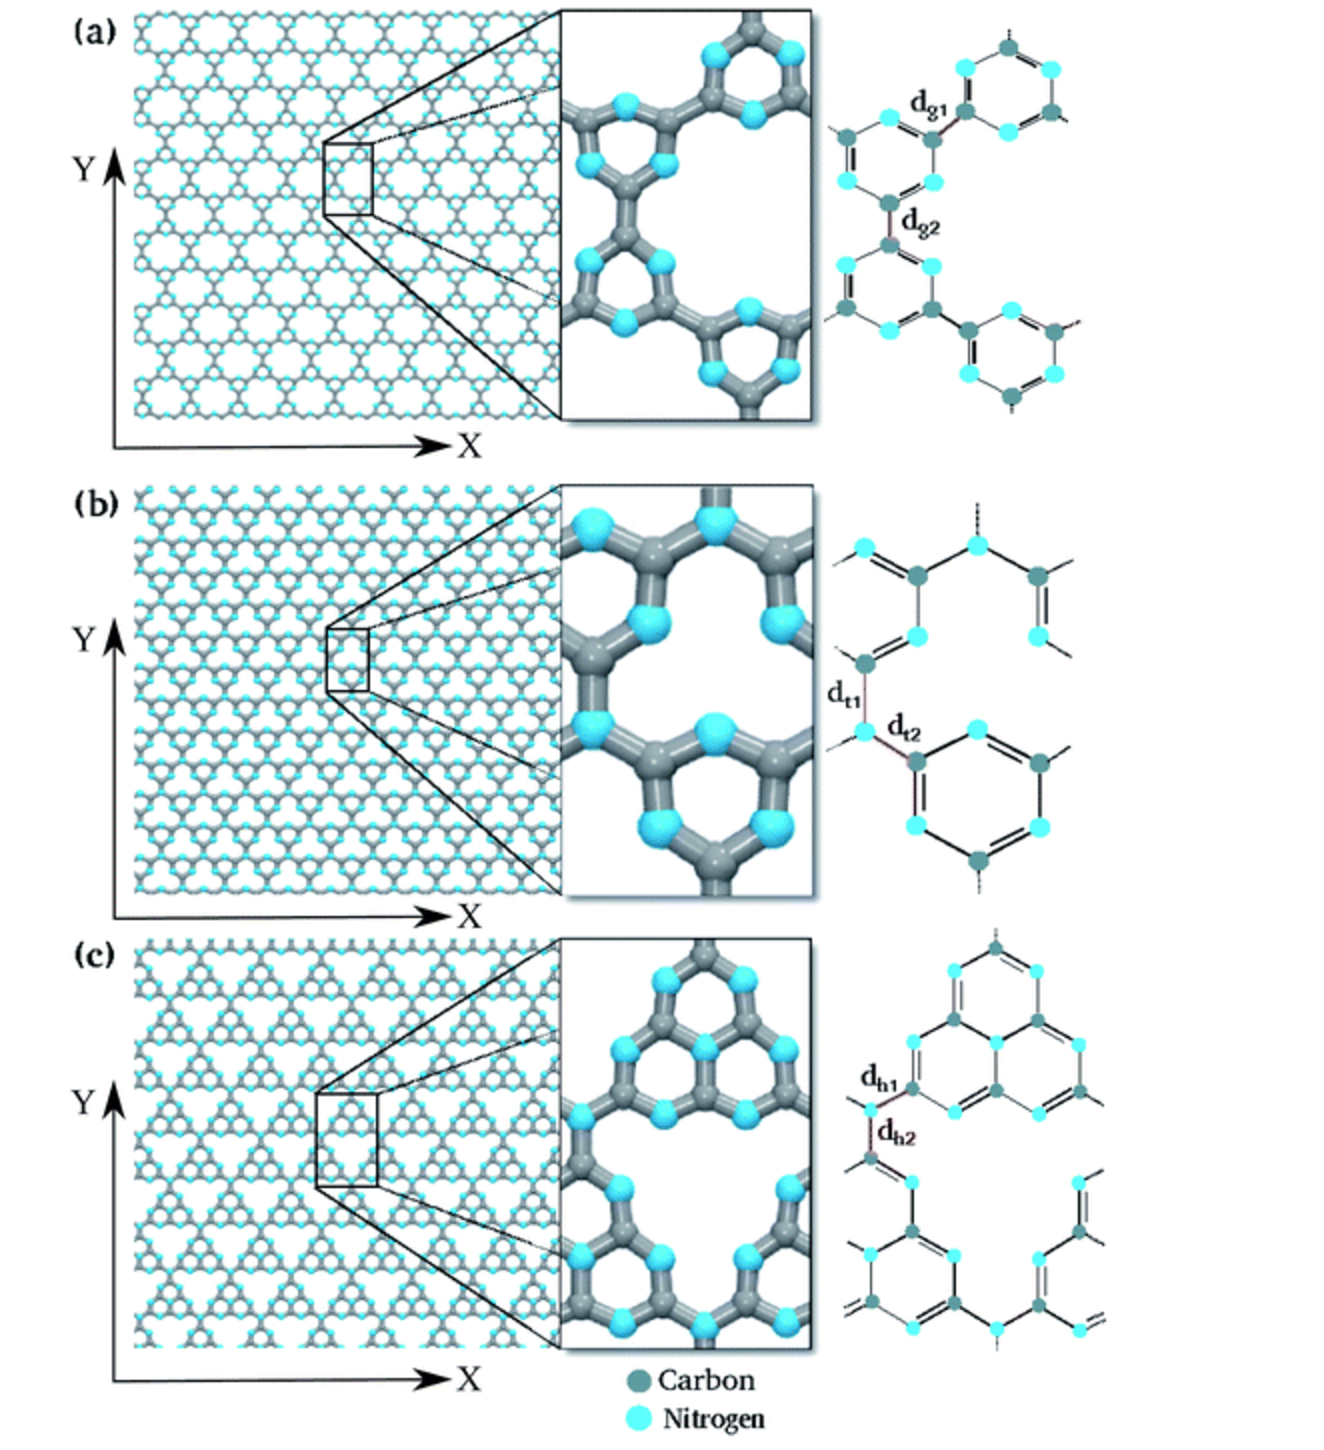 Mechanical and structural properties of graphene-like carbon nitride sheets